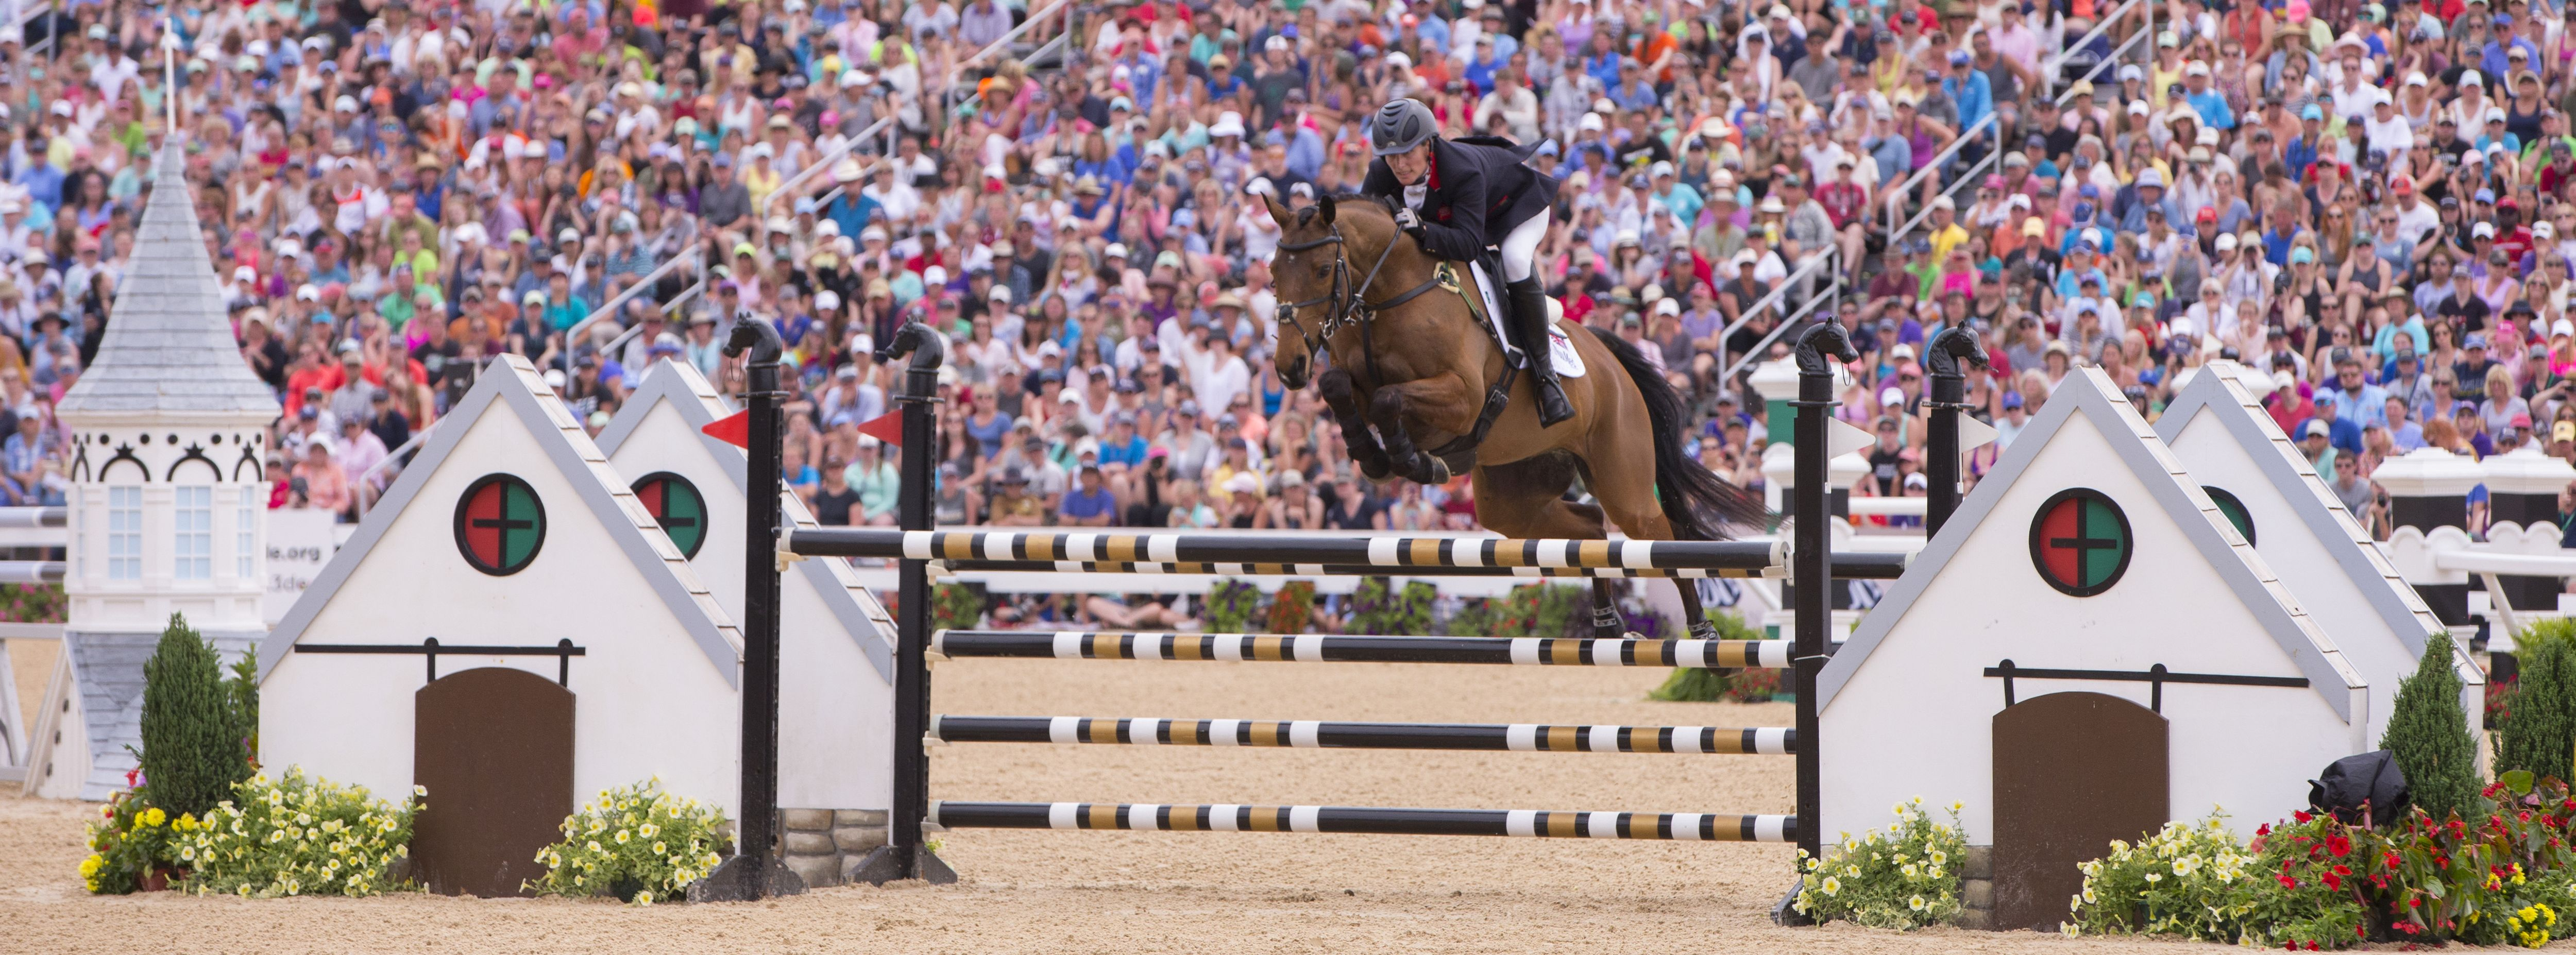 Home Kentucky Three Day Event Equestrian Events Kentucky - 12 equestrian places in the us